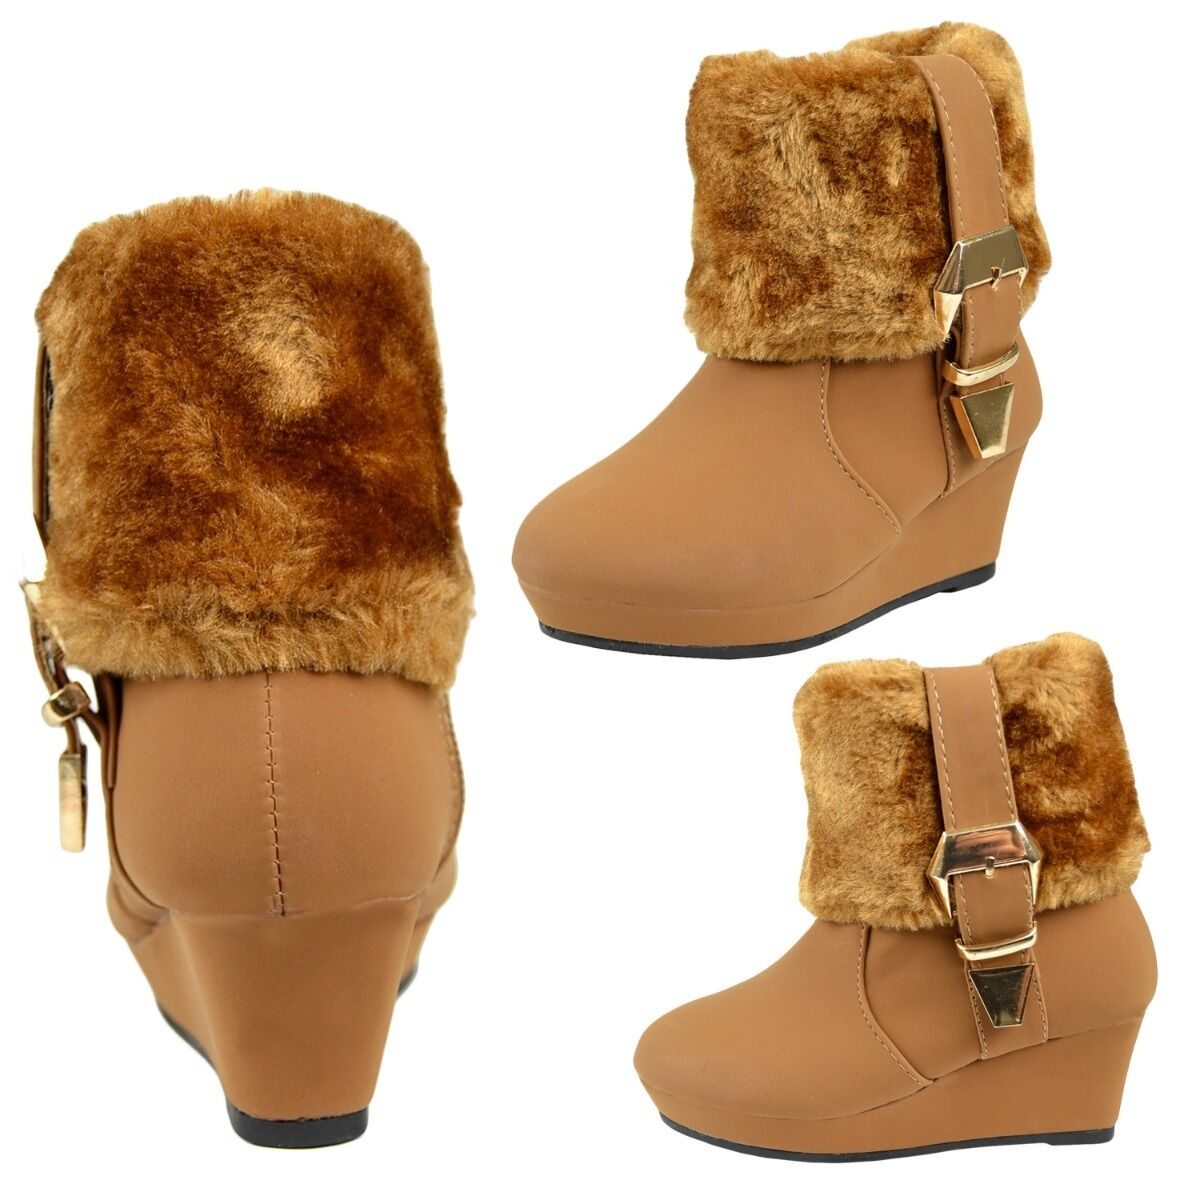 08a02c4bdf96 Details about Kids Boots Girls Toddler Youth Fur Cuff Ankle Wedge Booties  w  Buckle Accent Tan